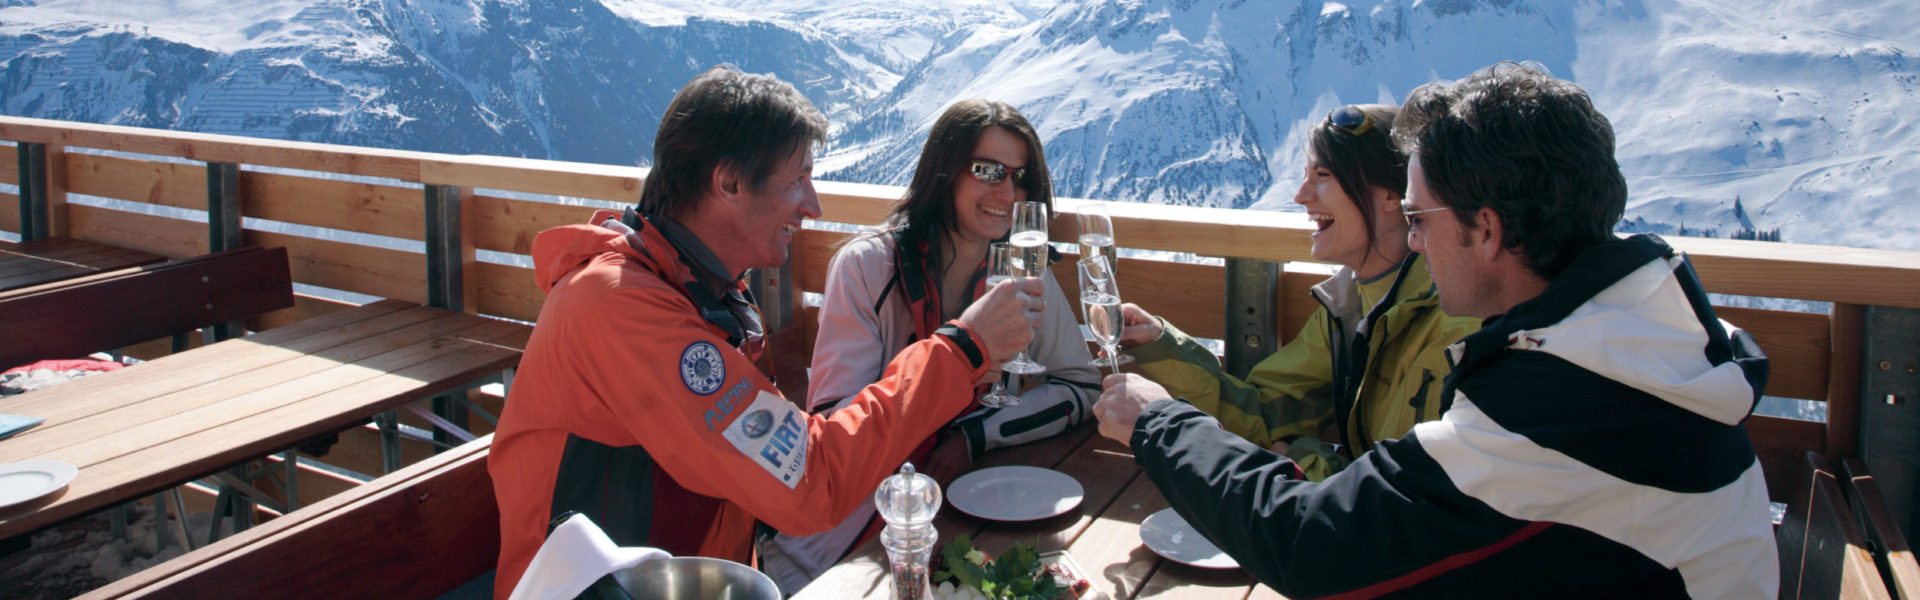 12 Tips For Rustic Culinary Experiences In Vorarlberg S Mountains